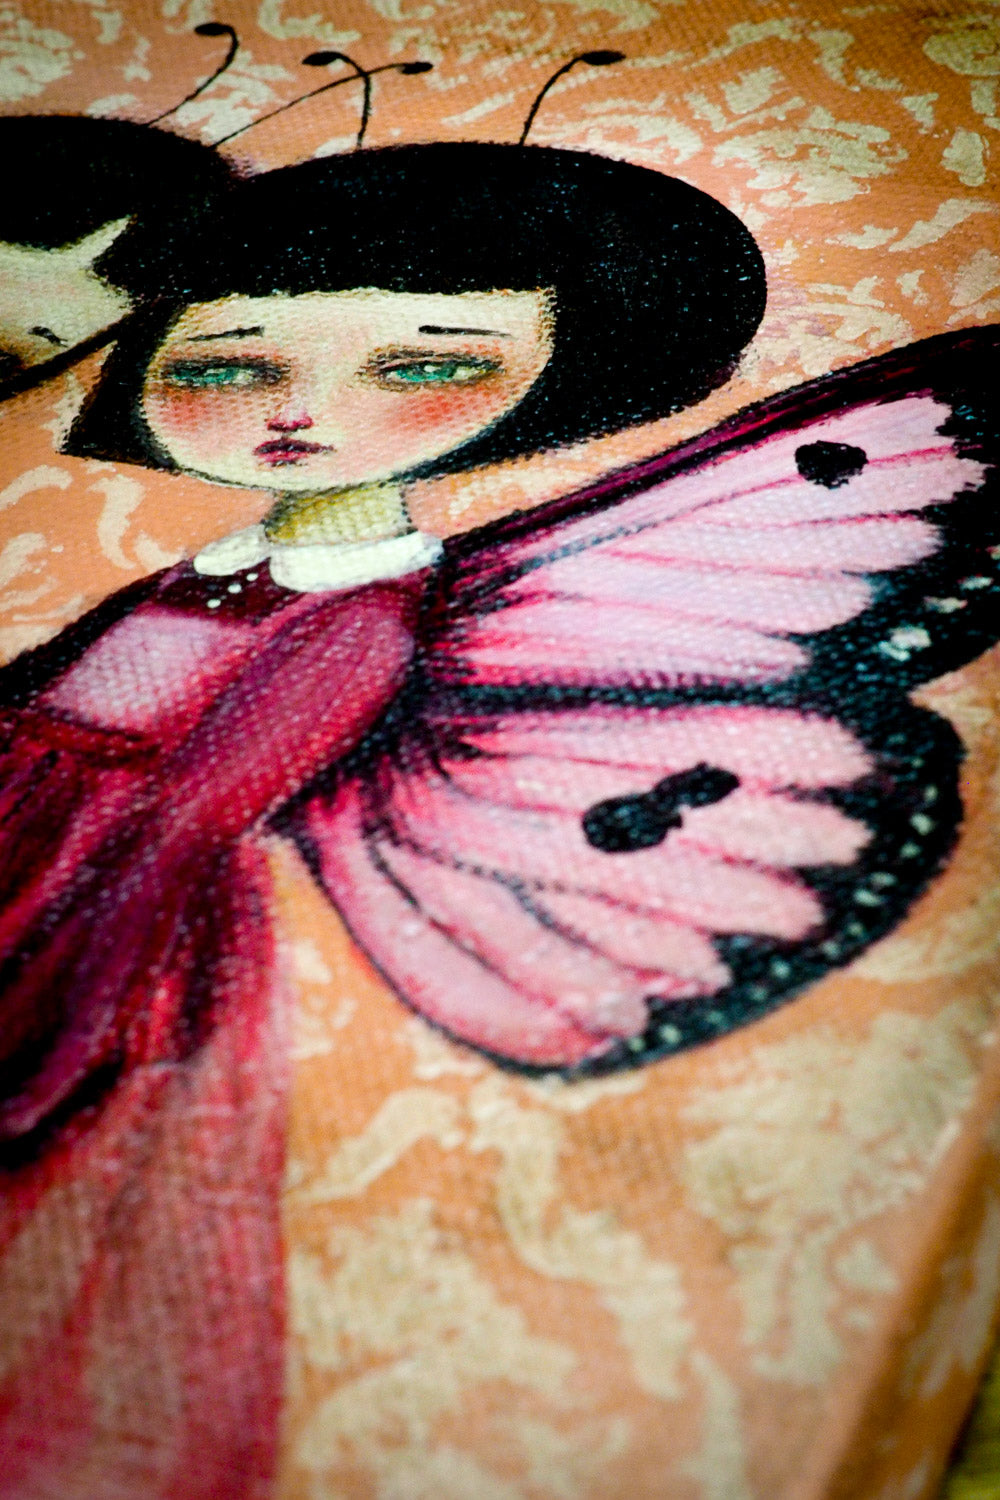 WE DREAM OF FLYING, Original Art by Danita Art